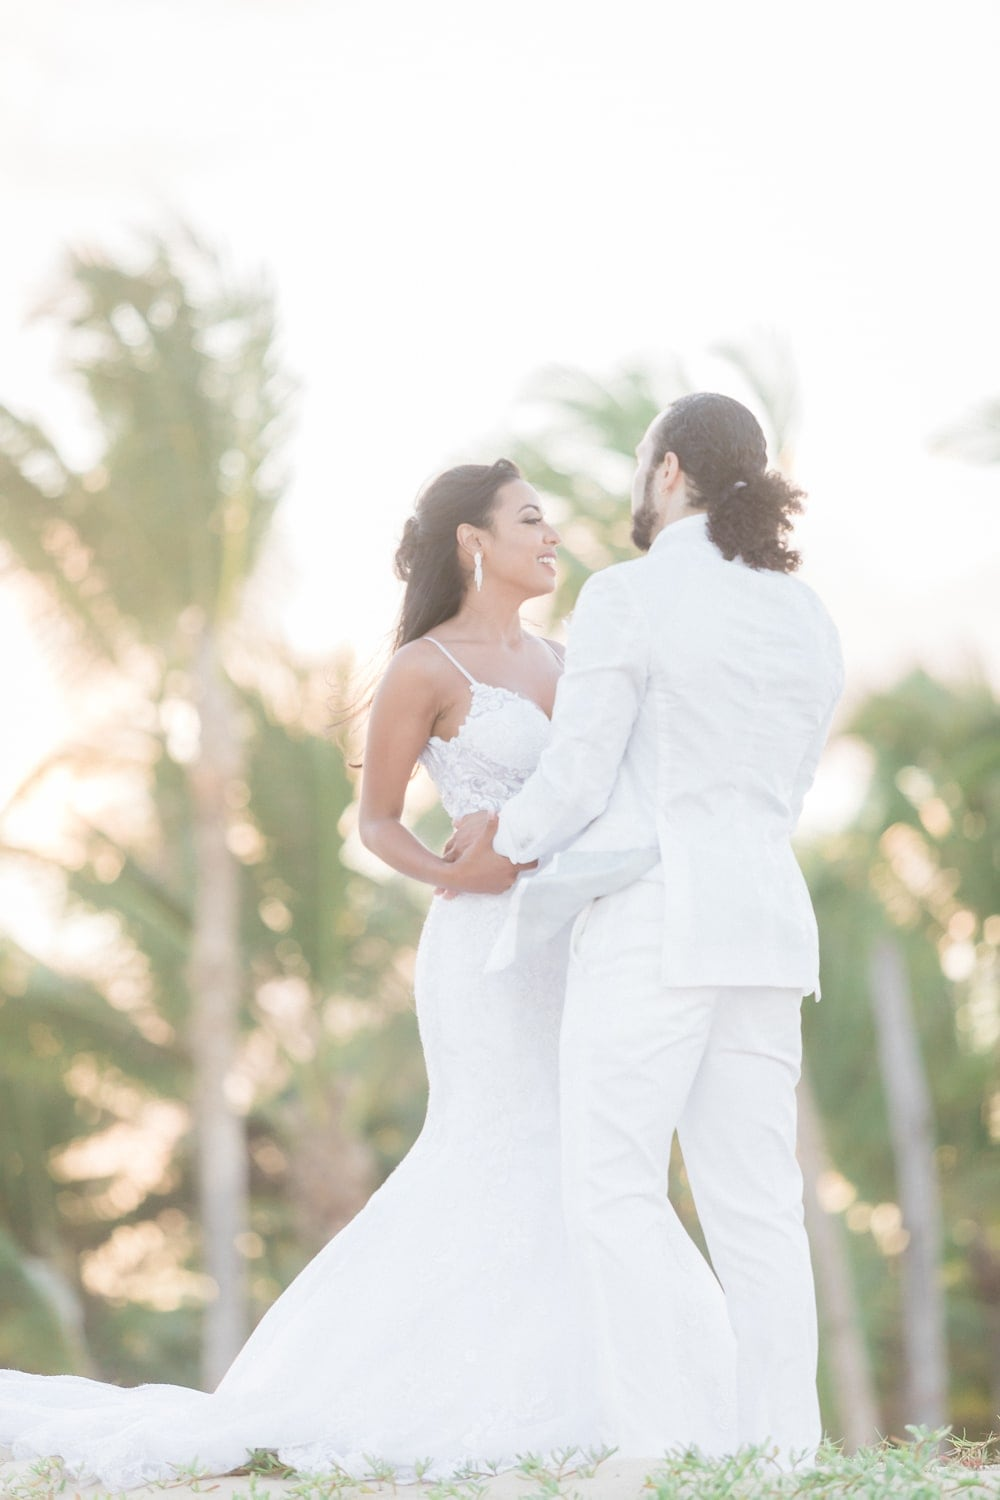 Photo of bride and groom after getting married at Hard Rock in Dominican Republic.